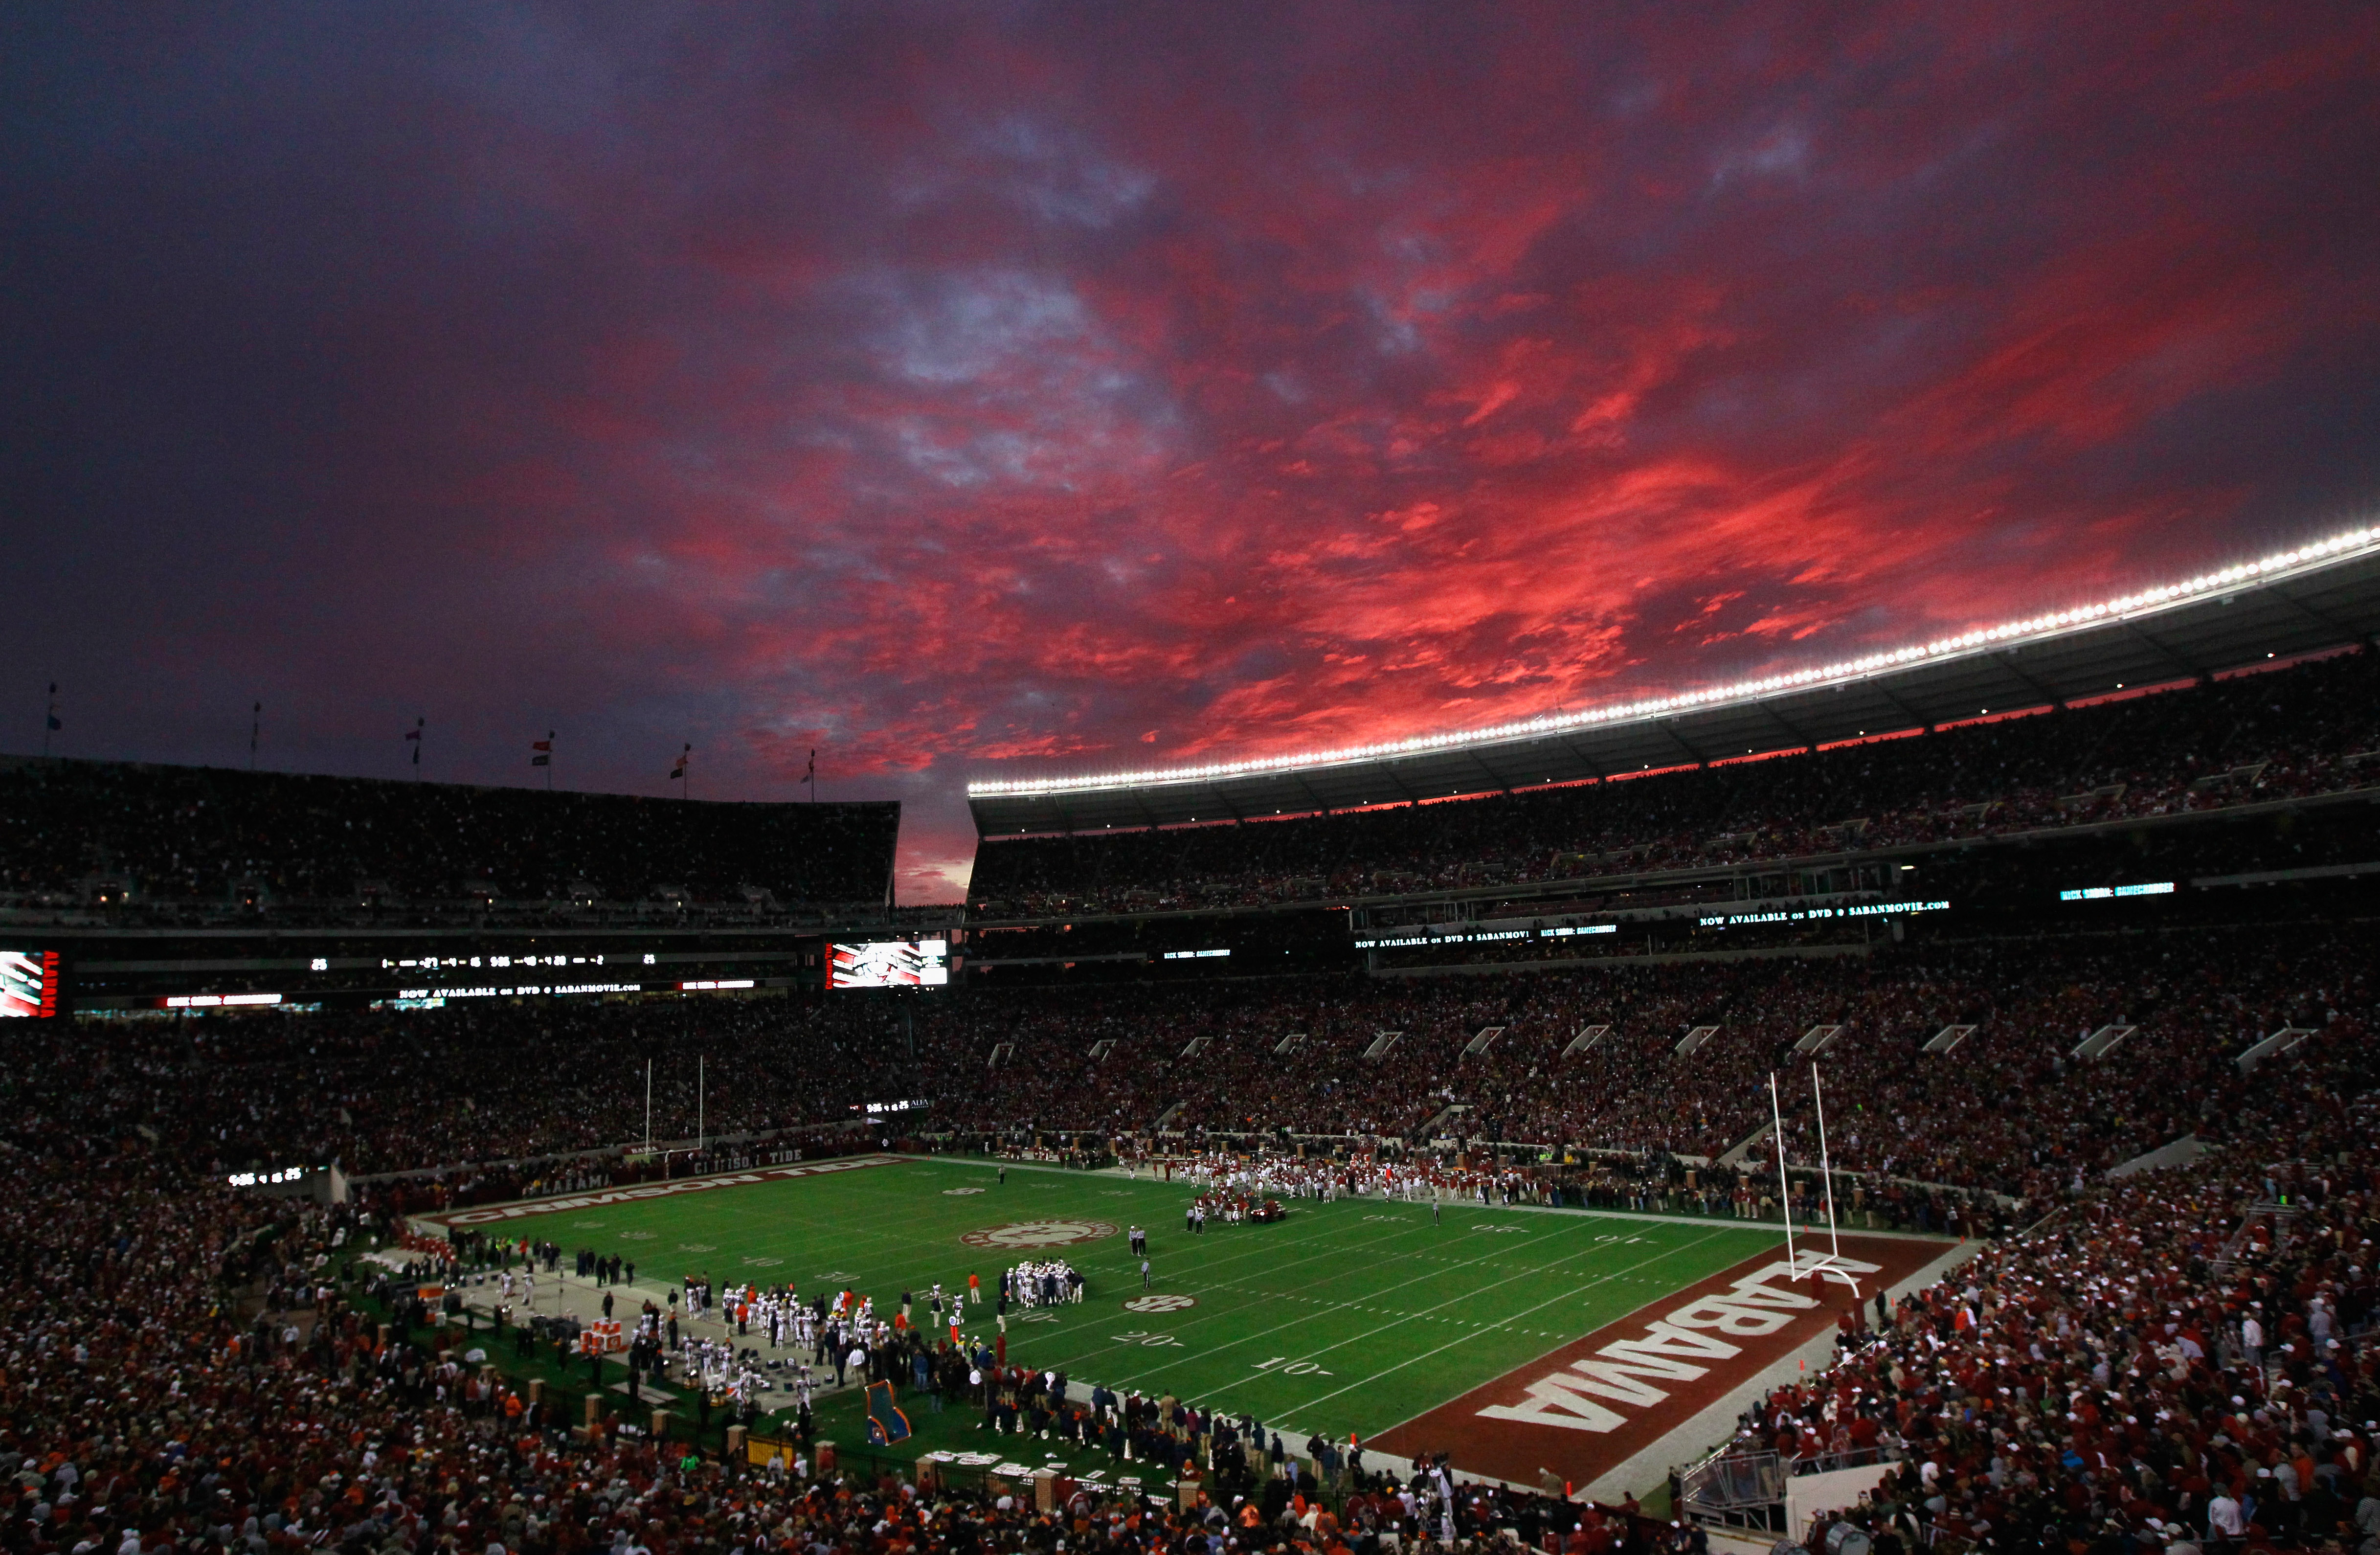 TUSCALOOSA, AL - NOVEMBER 26:  A general view of the sunset at Bryant-Denny Stadium during the game between the Auburn Tigers and the Alabama Crimson Tide on November 26, 2010 in Tuscaloosa, Alabama.  (Photo by Kevin C. Cox/Getty Images)